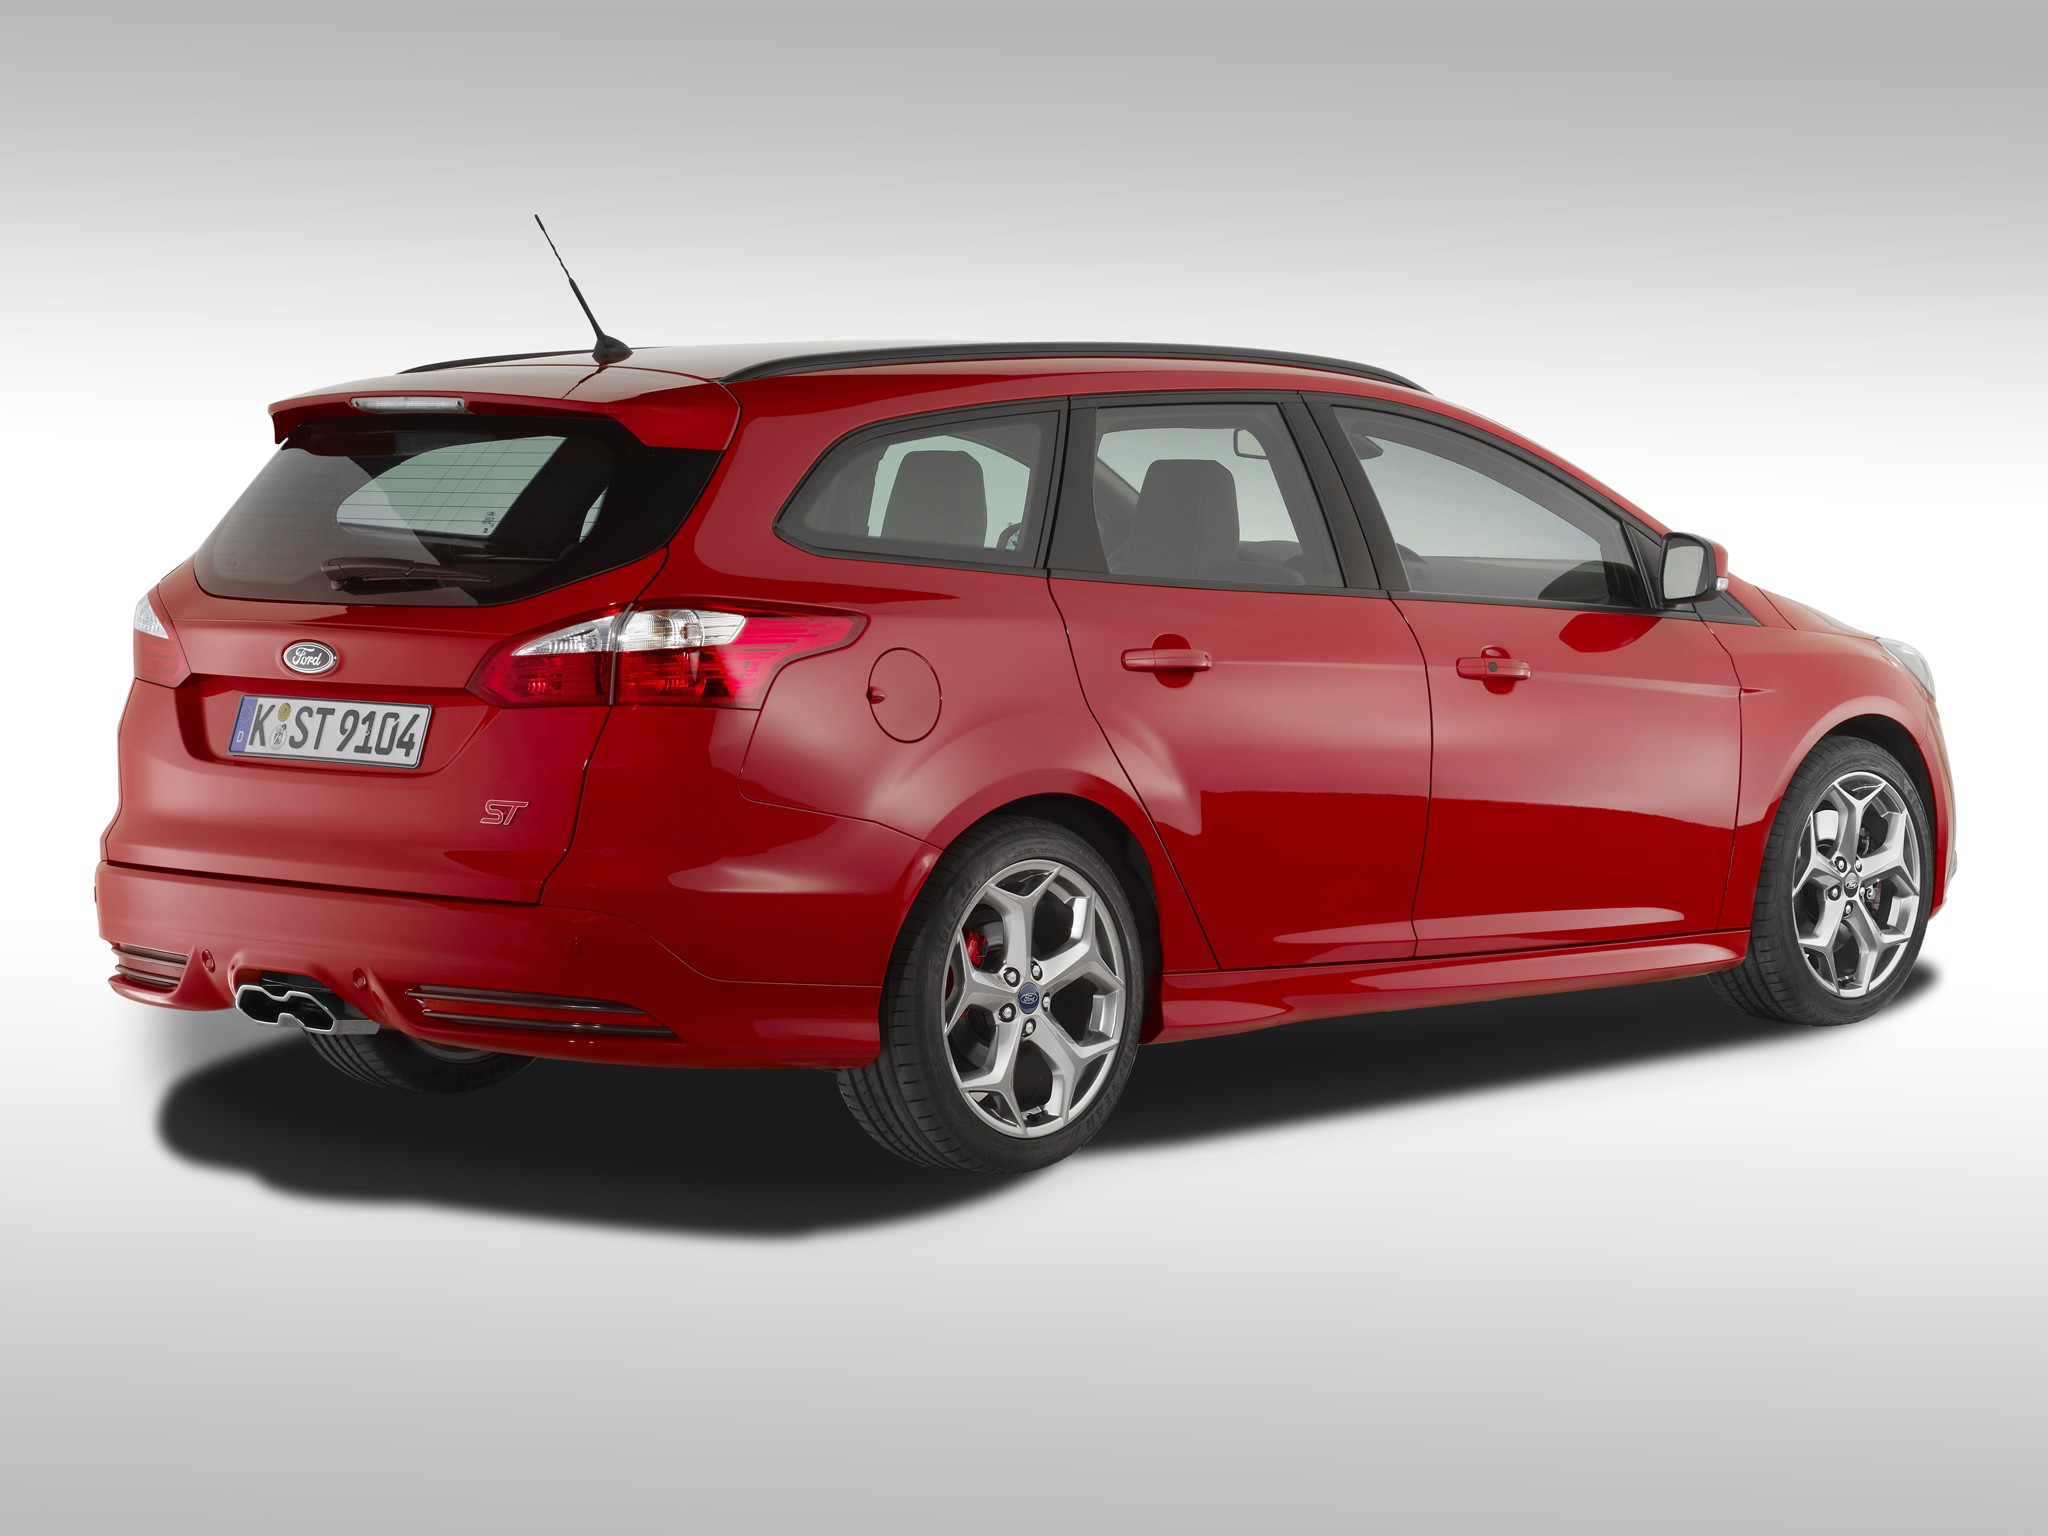 ford focus st estate specs 2012 2013 2014 2015 2016. Black Bedroom Furniture Sets. Home Design Ideas